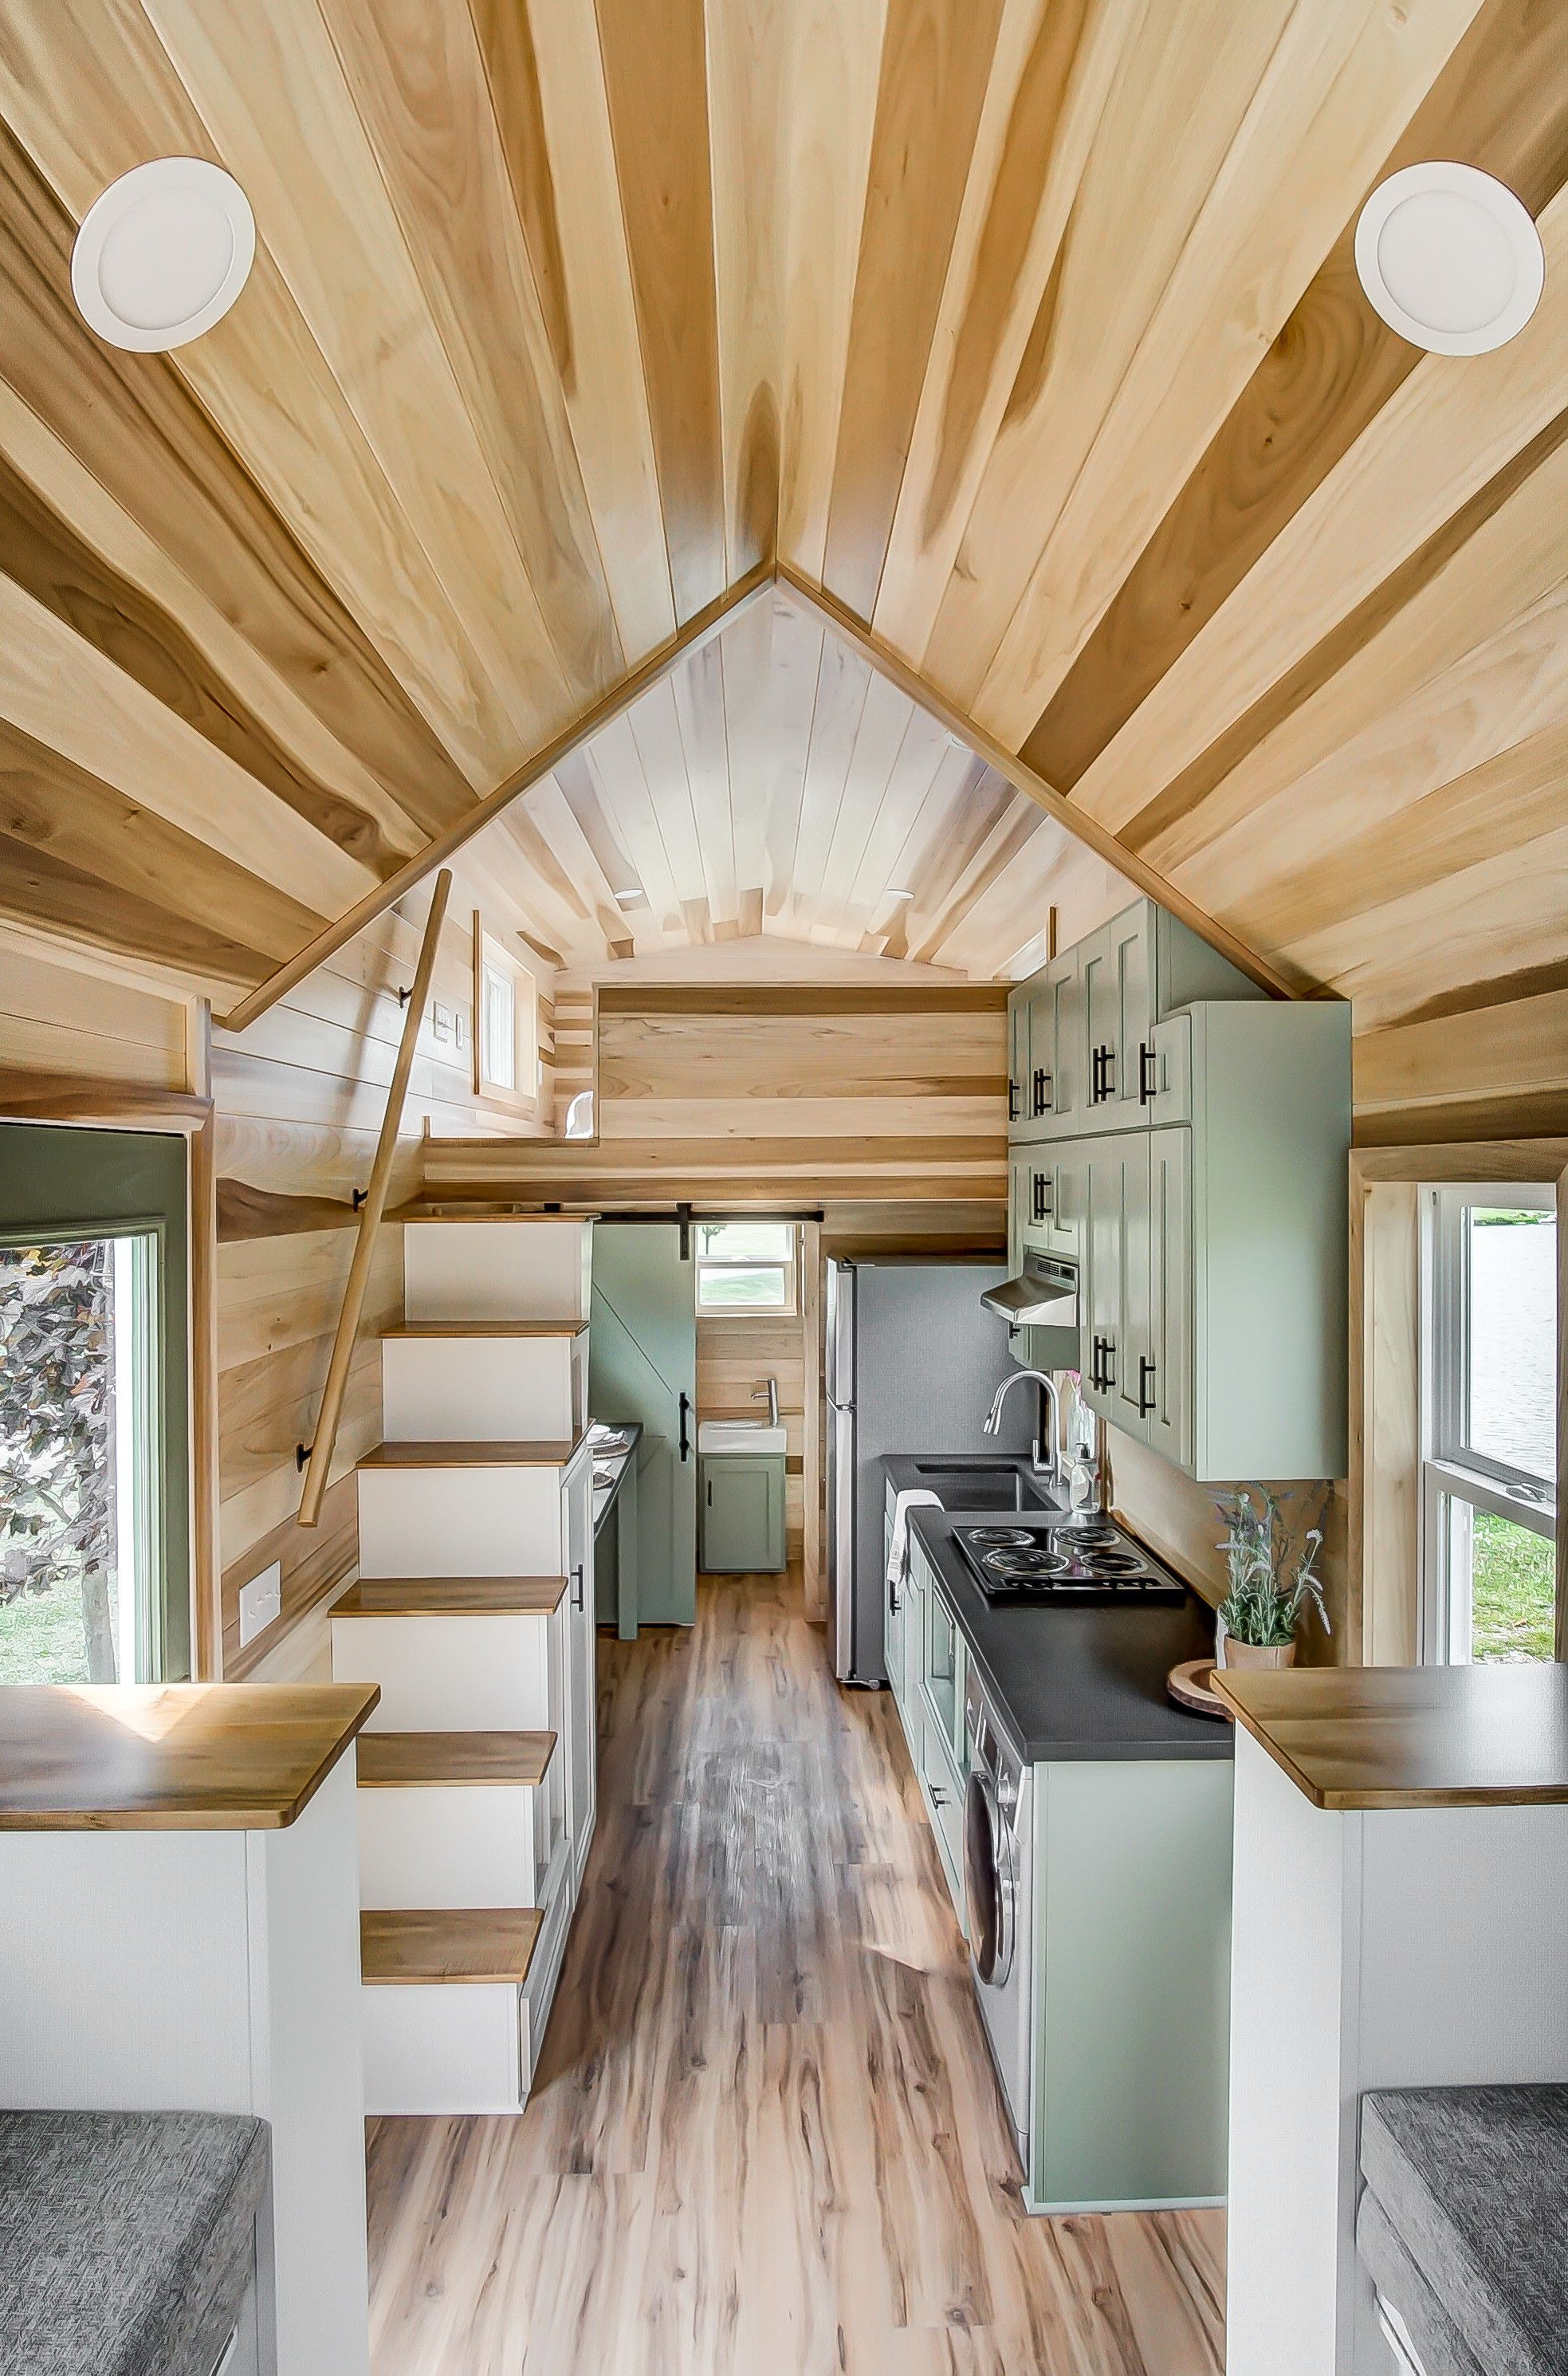 Tiny Houses On Wheels Floor Plans Beautiful Clover A 24 Ft X 8 5 Ft Tiny House On Wheels Designed and